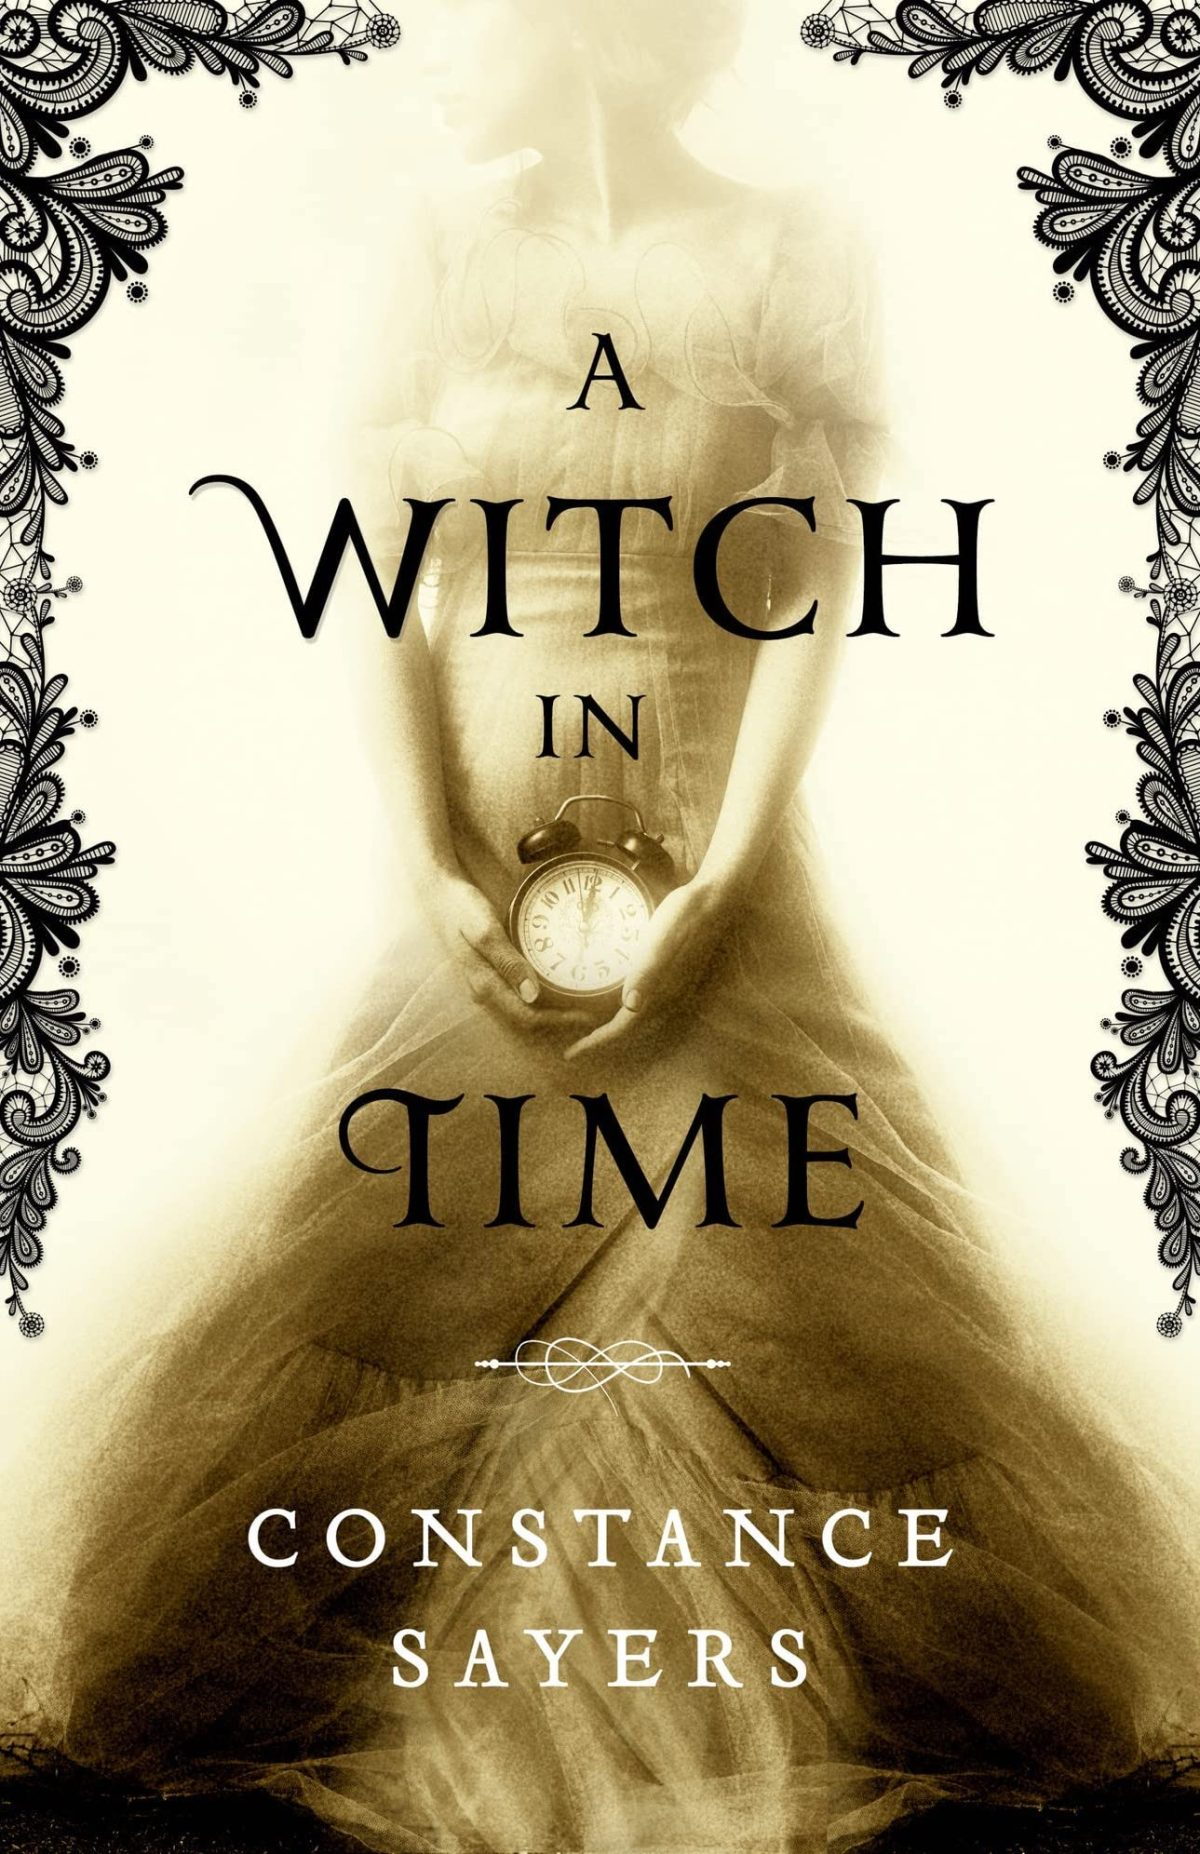 Constance Sayers - A Witch in Time